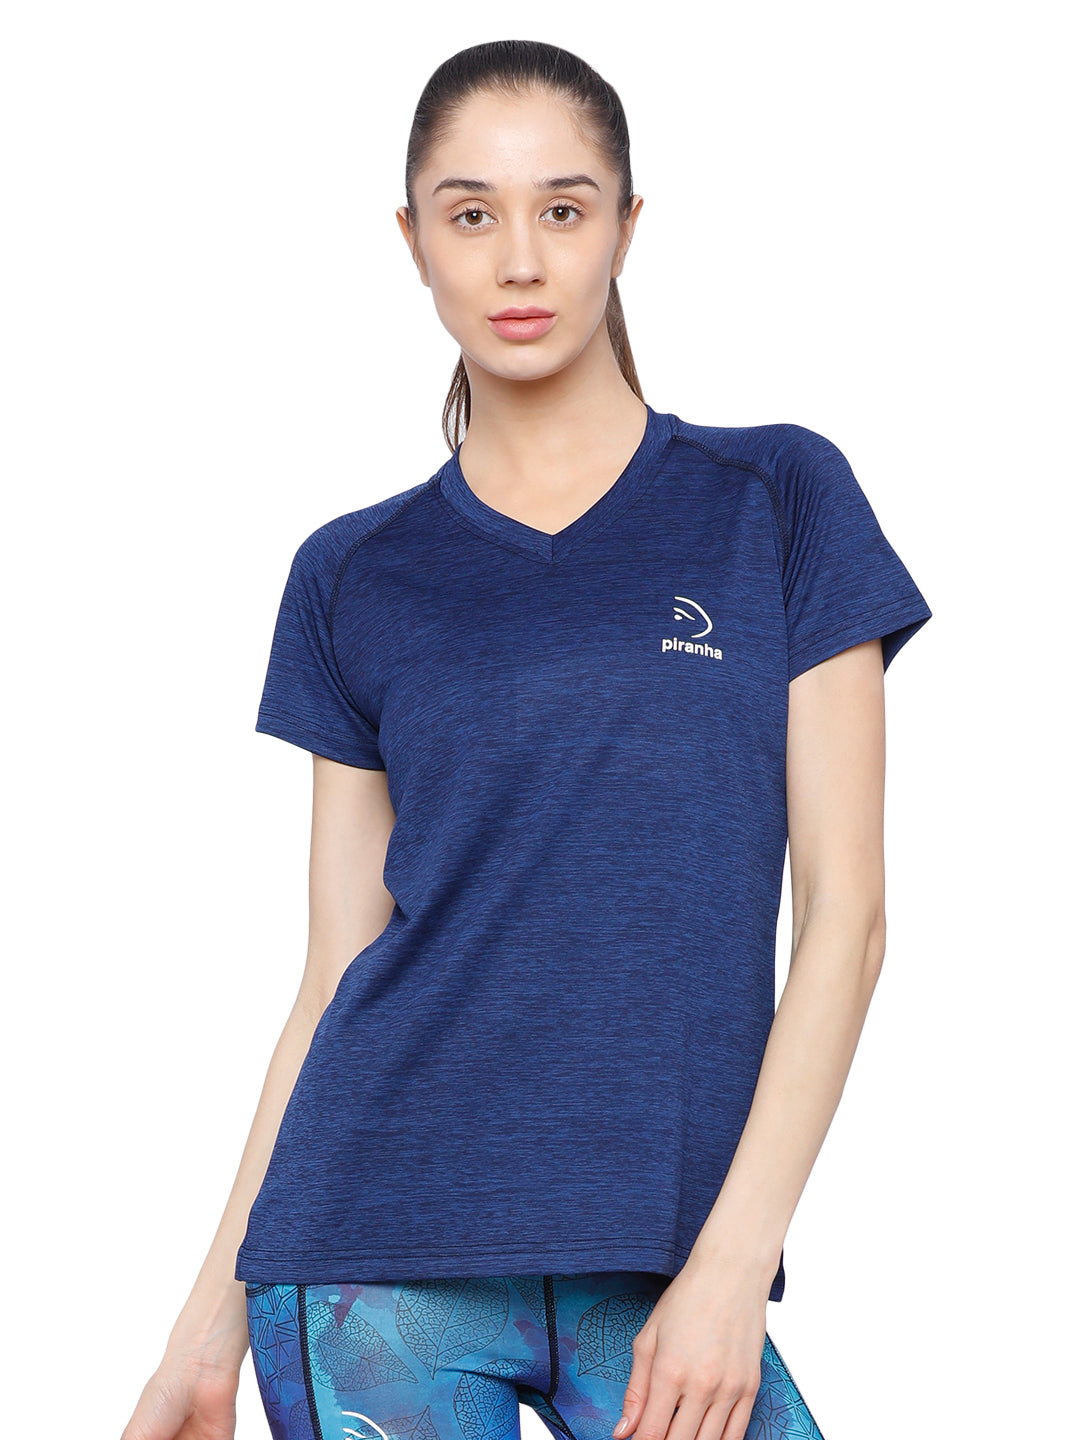 Piranha Women's Blue T-shirt - TSG196